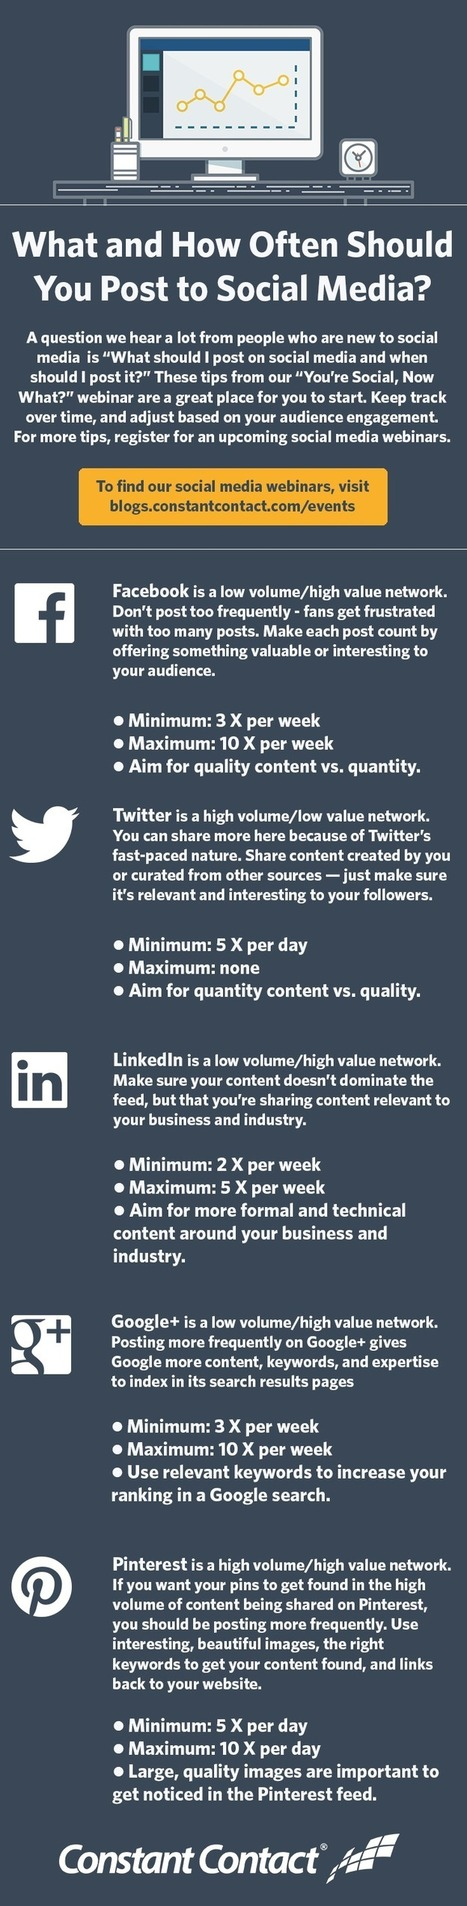 [Cheat Sheet] What and How Often Should You Post on Social Media? | Infographics of Interest | Scoop.it